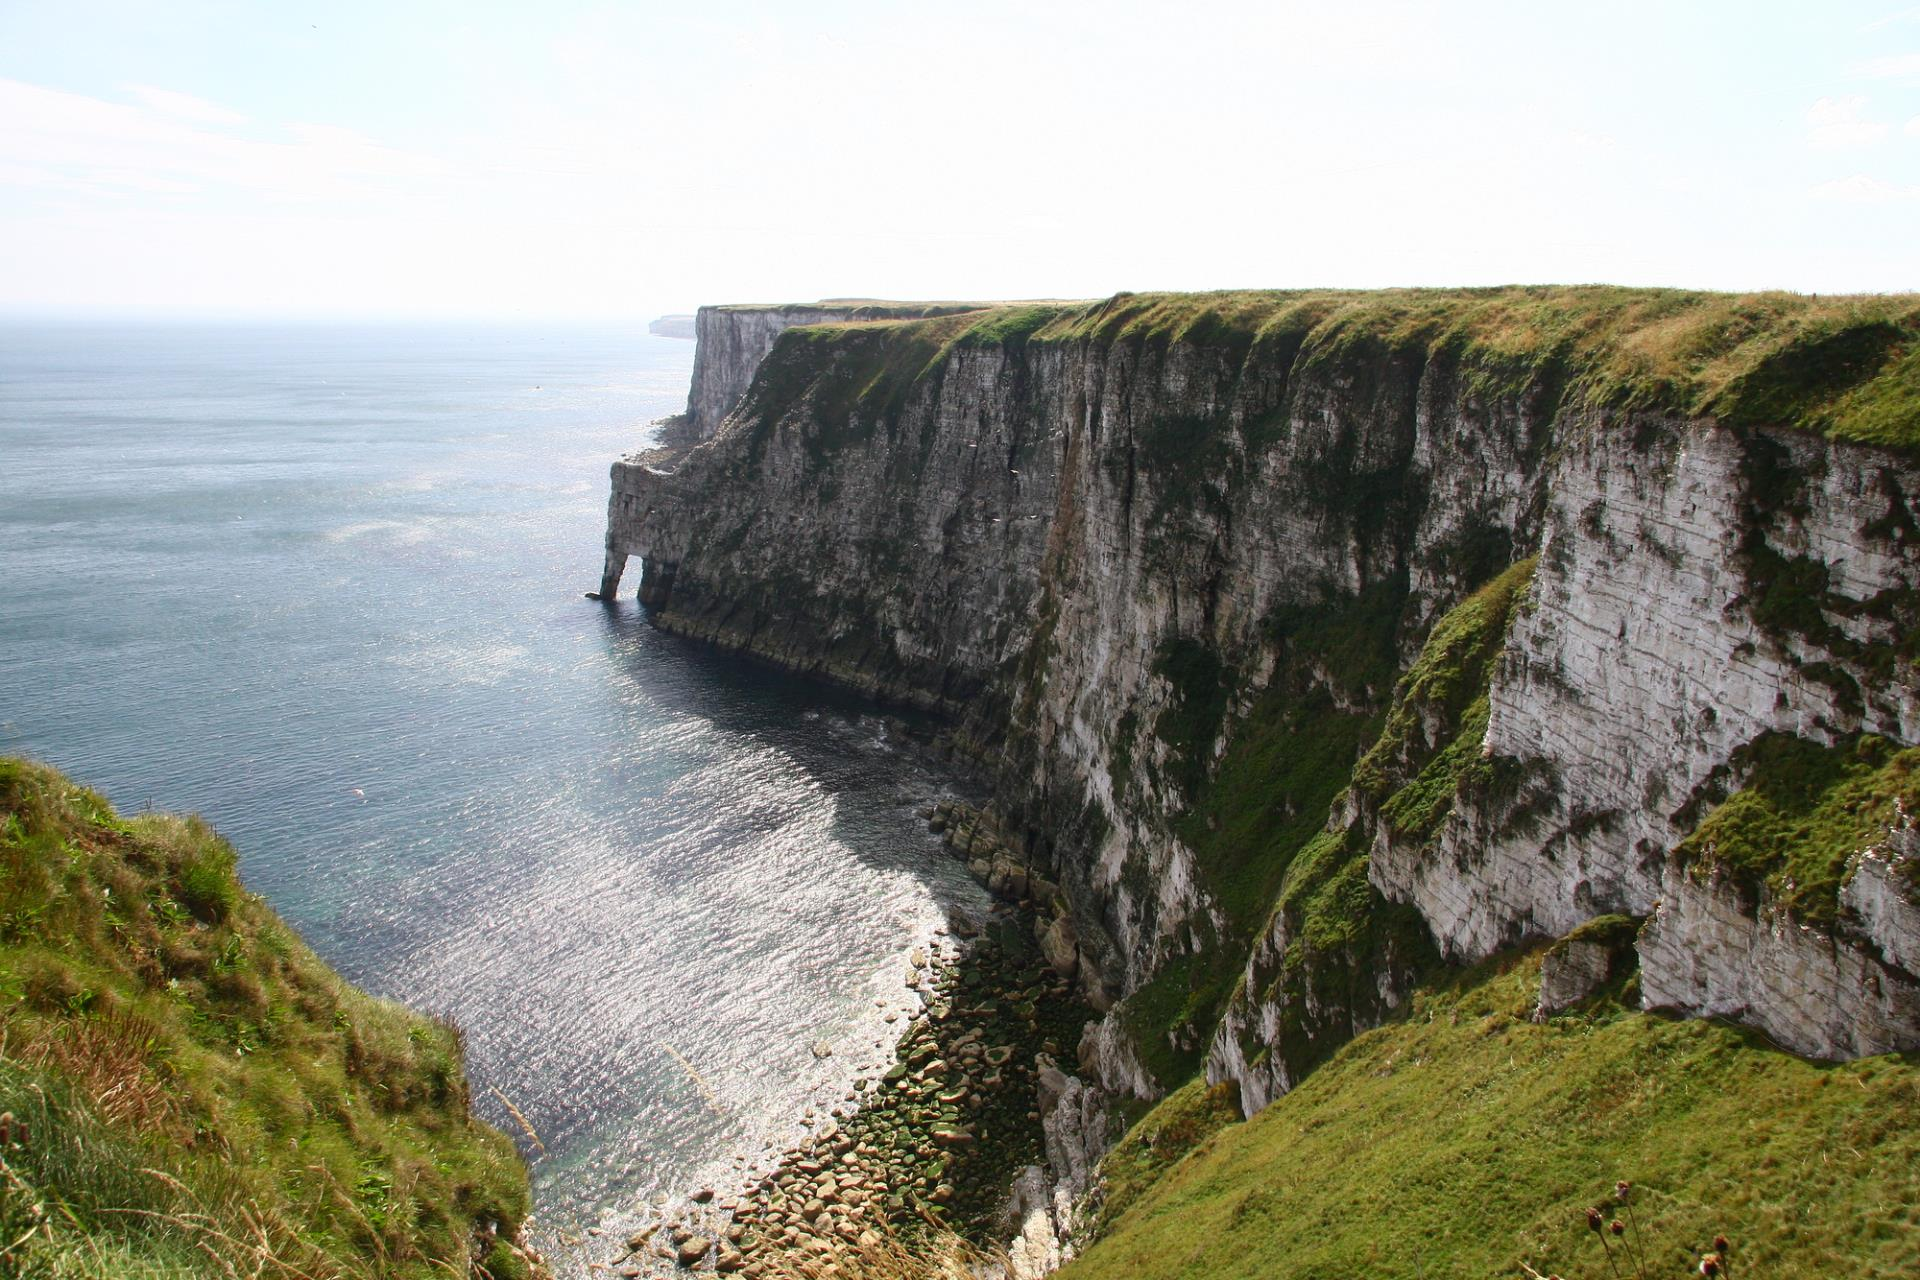 RSPB Bempton Cliffs - Elephant Rock